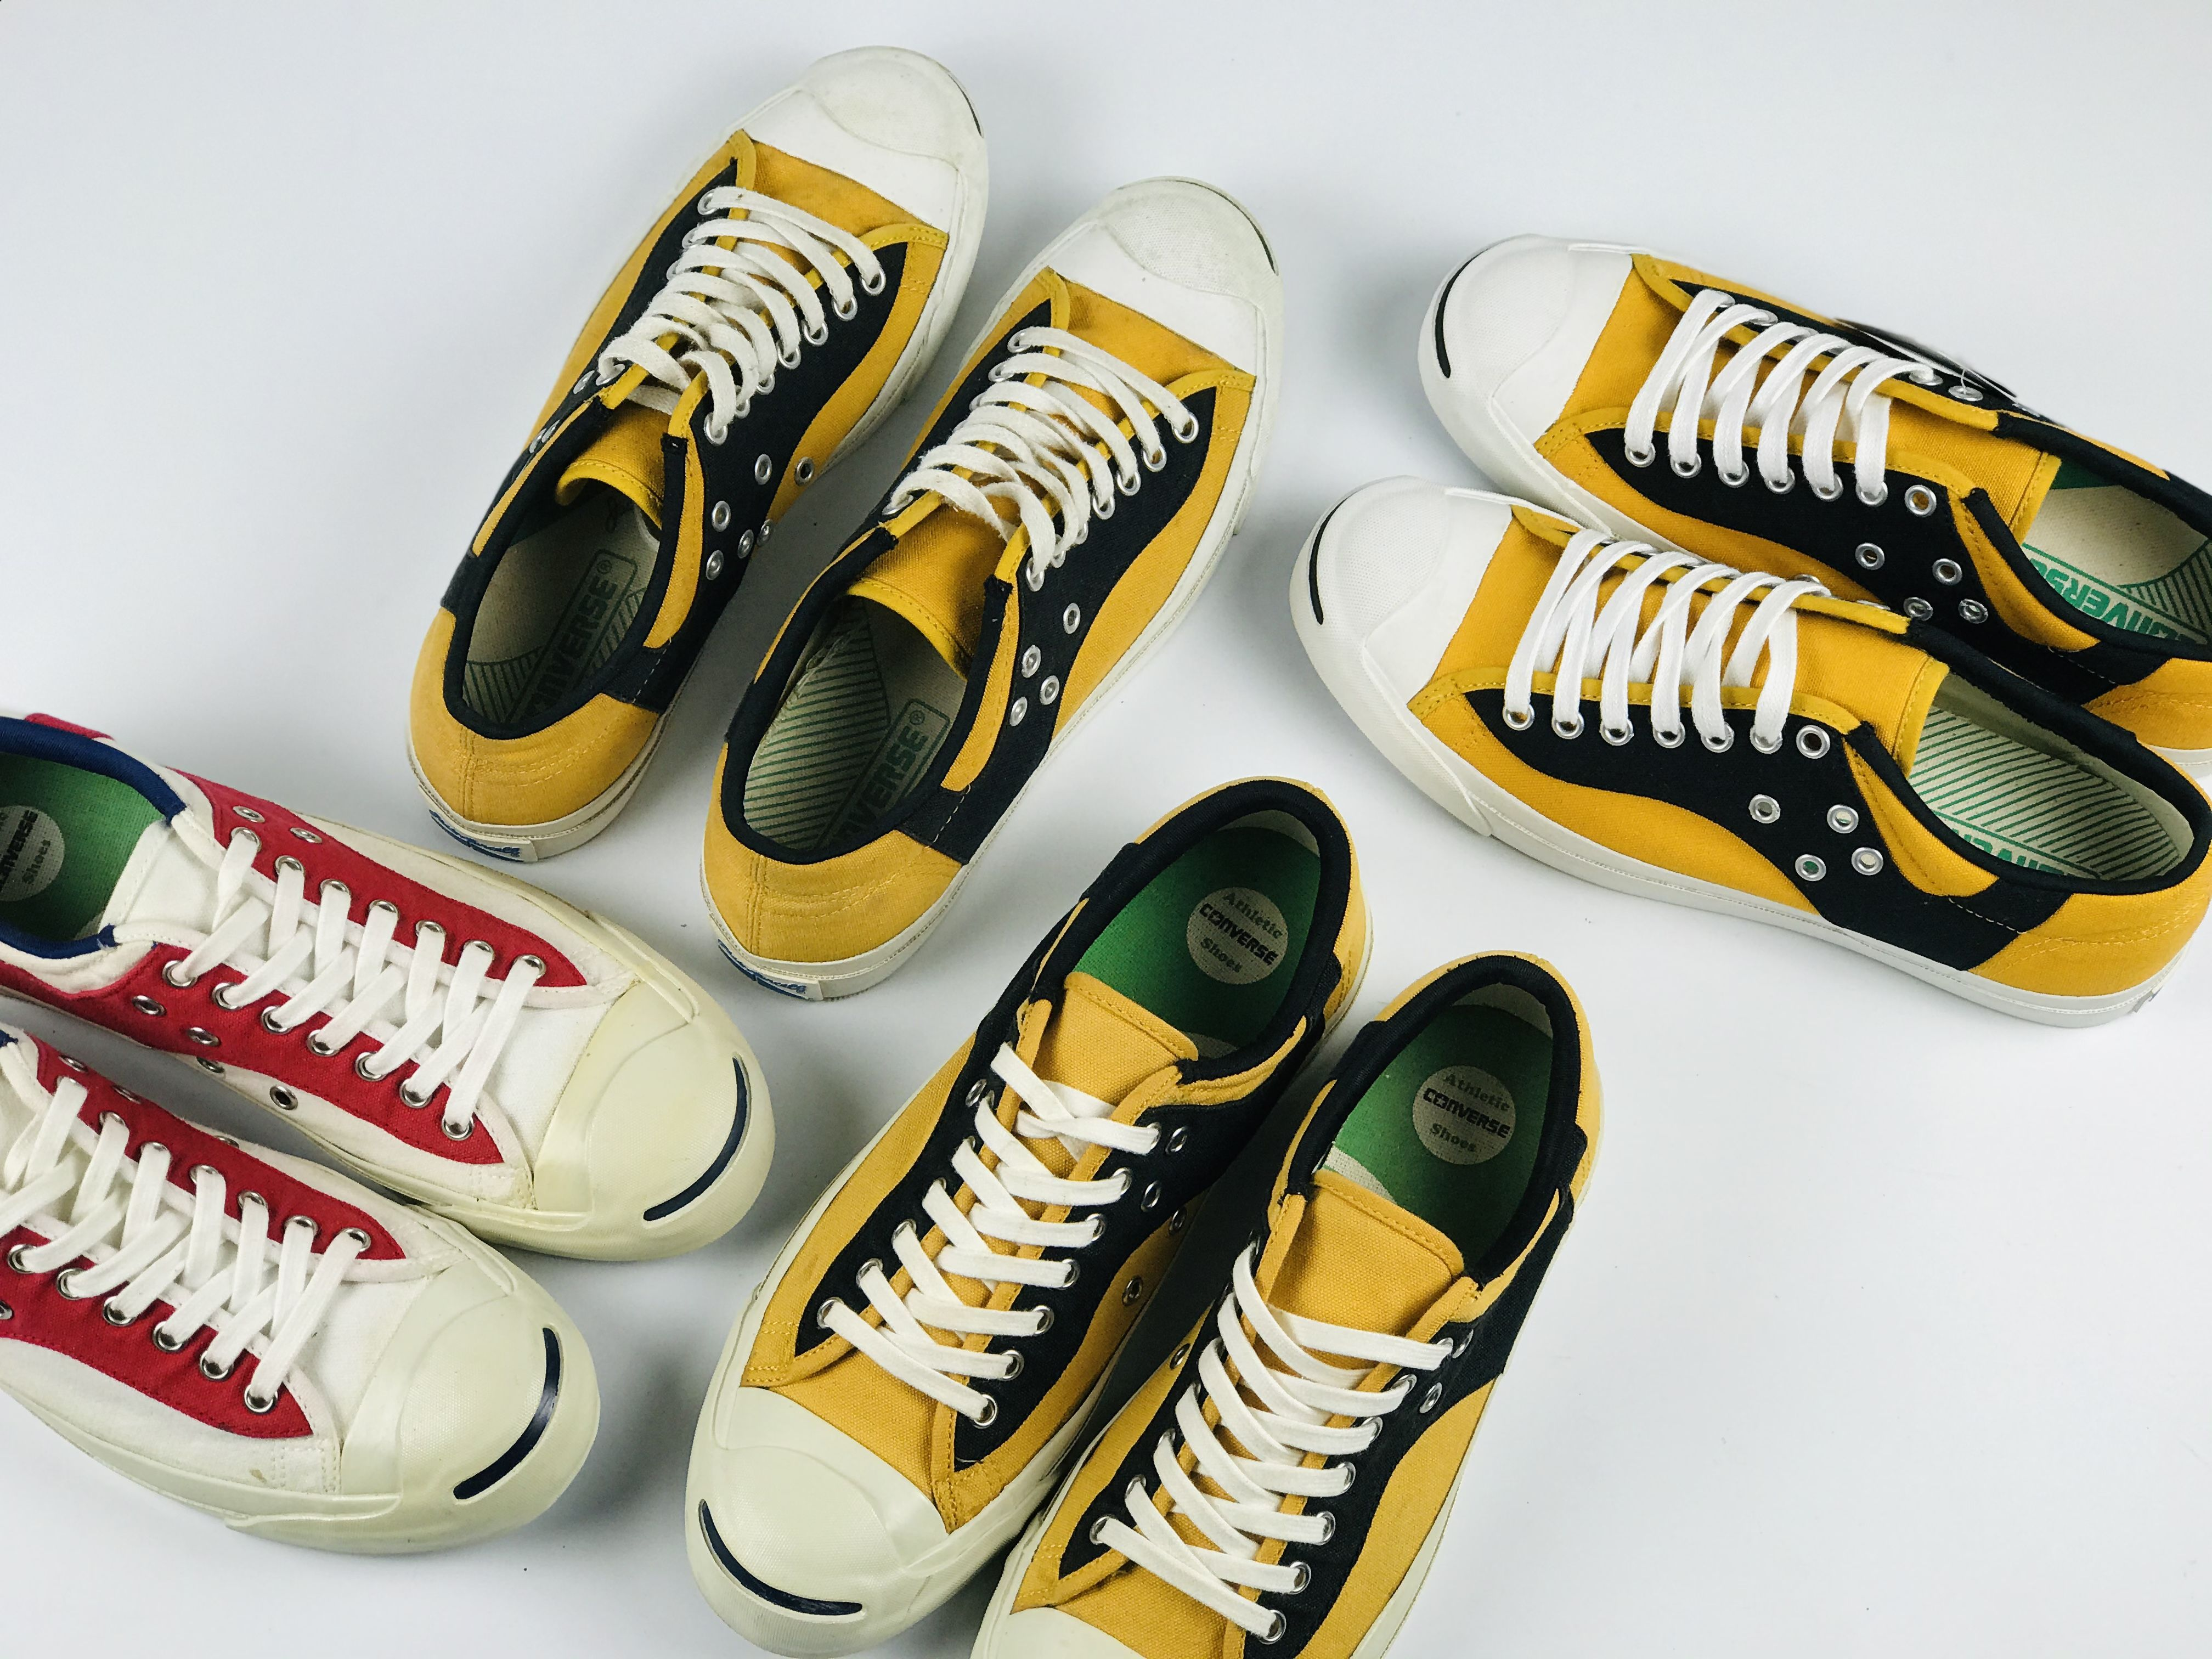 Converse Jack Purcell Rally Japan Edition In 2020 Jack Purcell Converse Jack Purcell Vintage Instagram